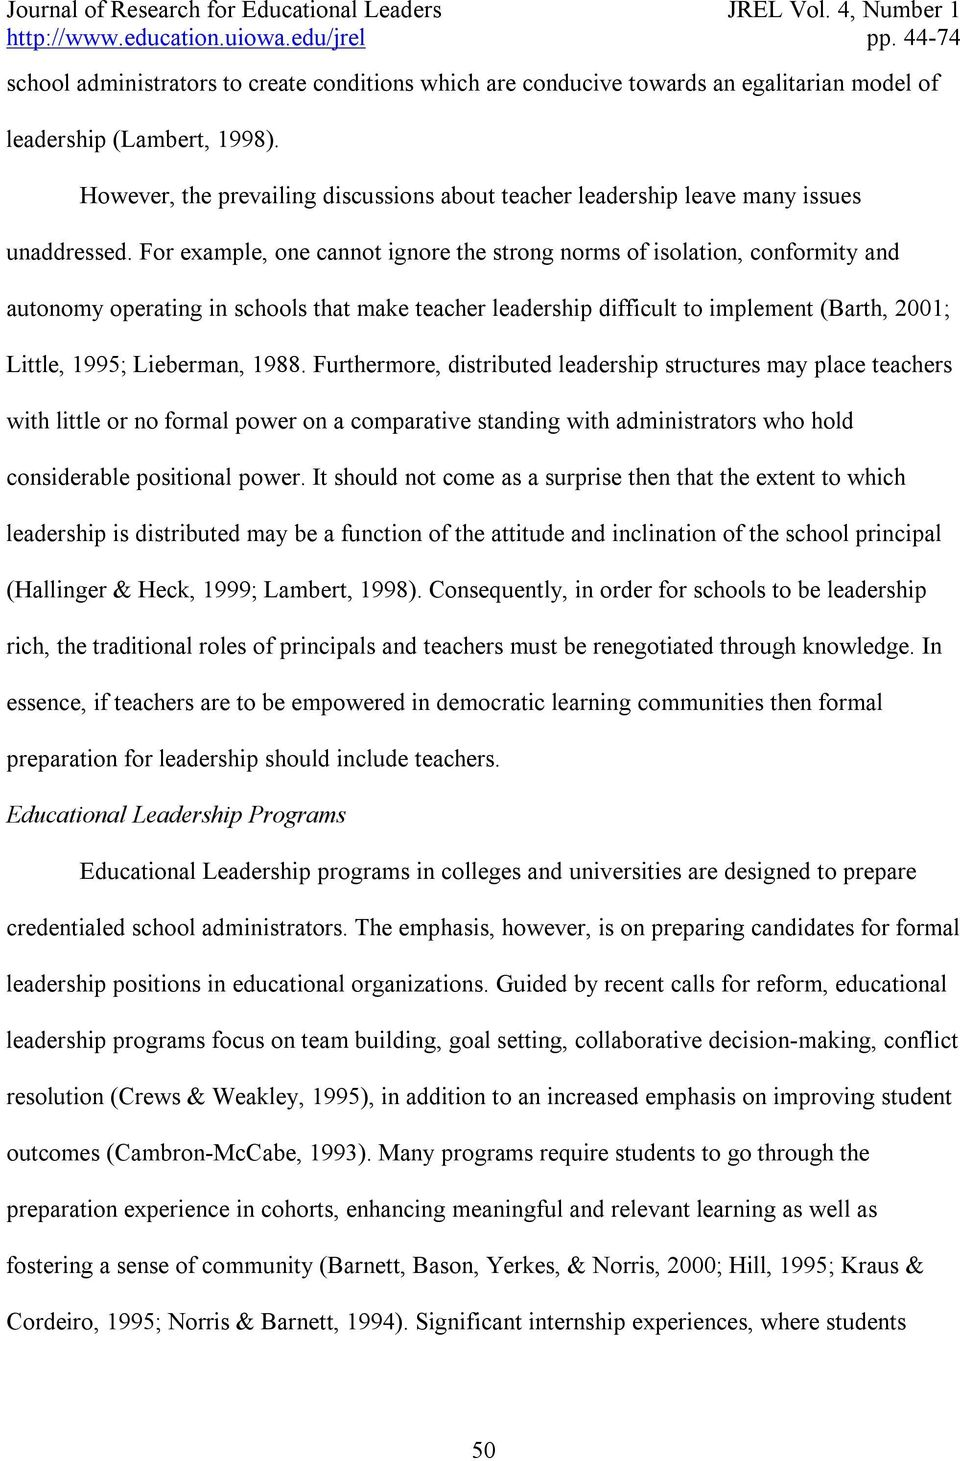 For example, one cannot ignore the strong norms of isolation, conformity and autonomy operating in schools that make teacher leadership difficult to implement (Barth, 2001; Little, 1995; Lieberman,